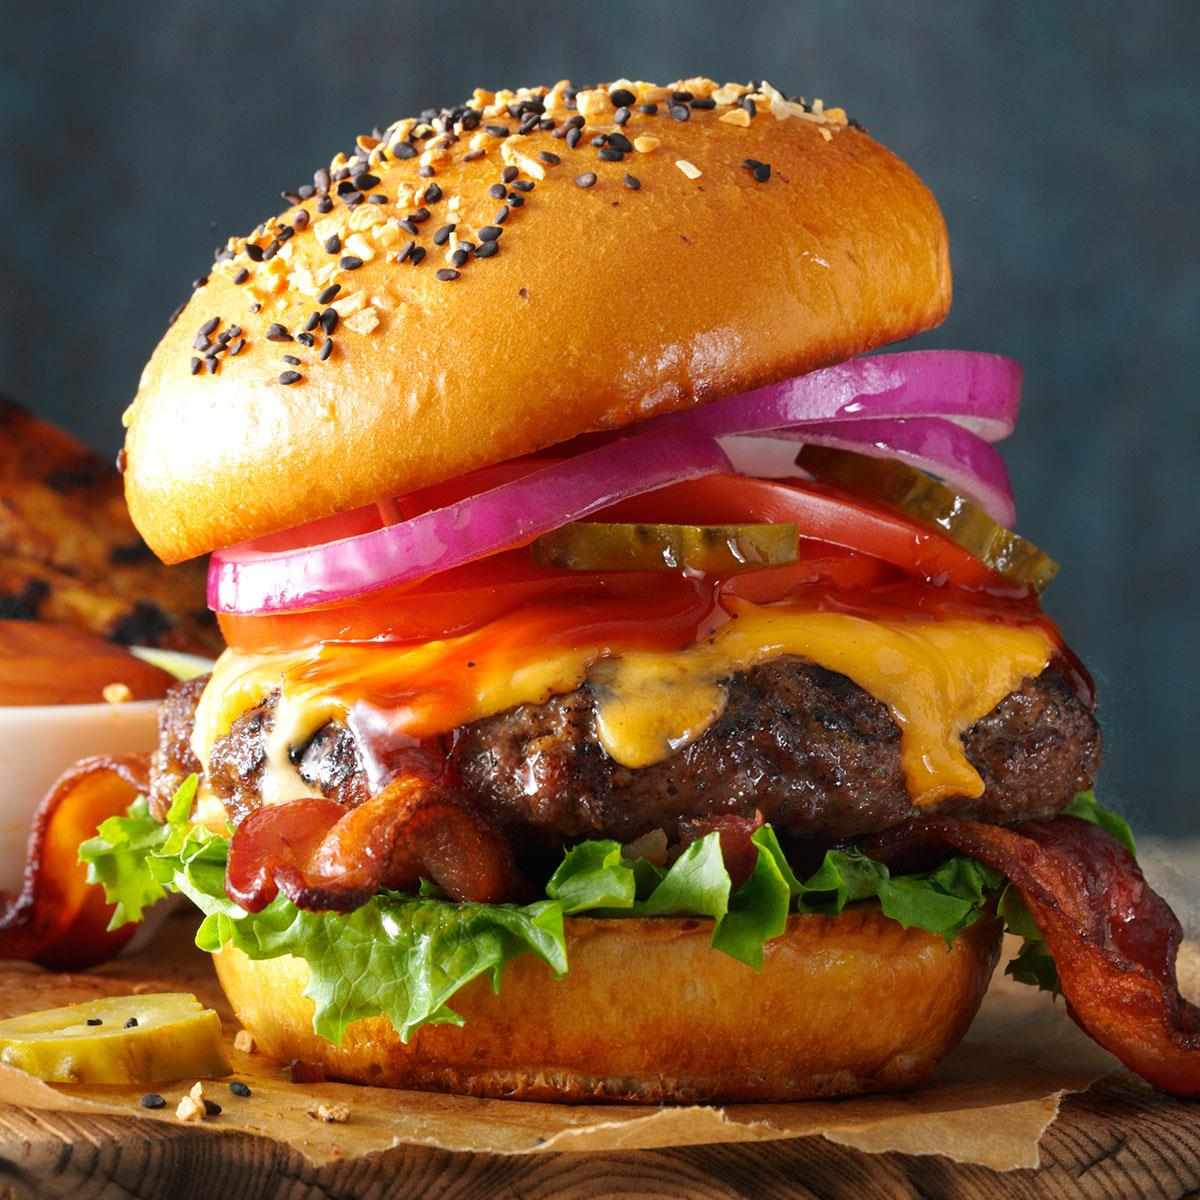 Barbecued Burgers image